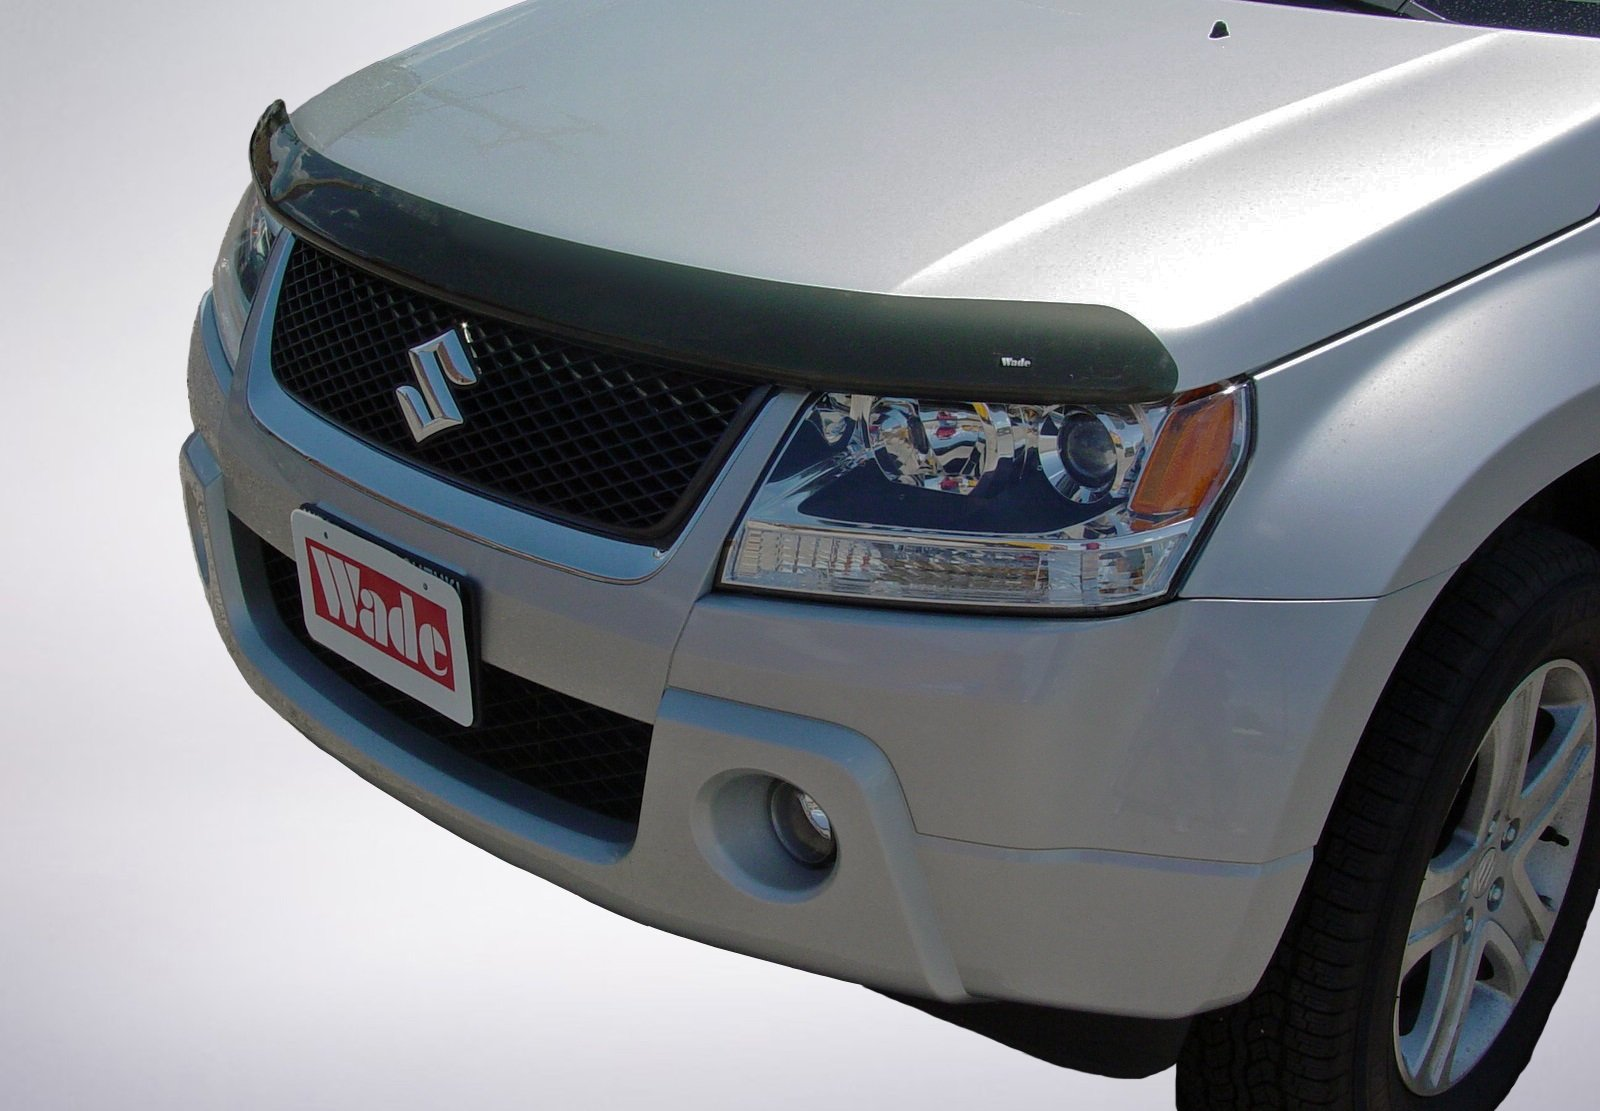 2007 Suzuki Grand Vitara Bug Shield